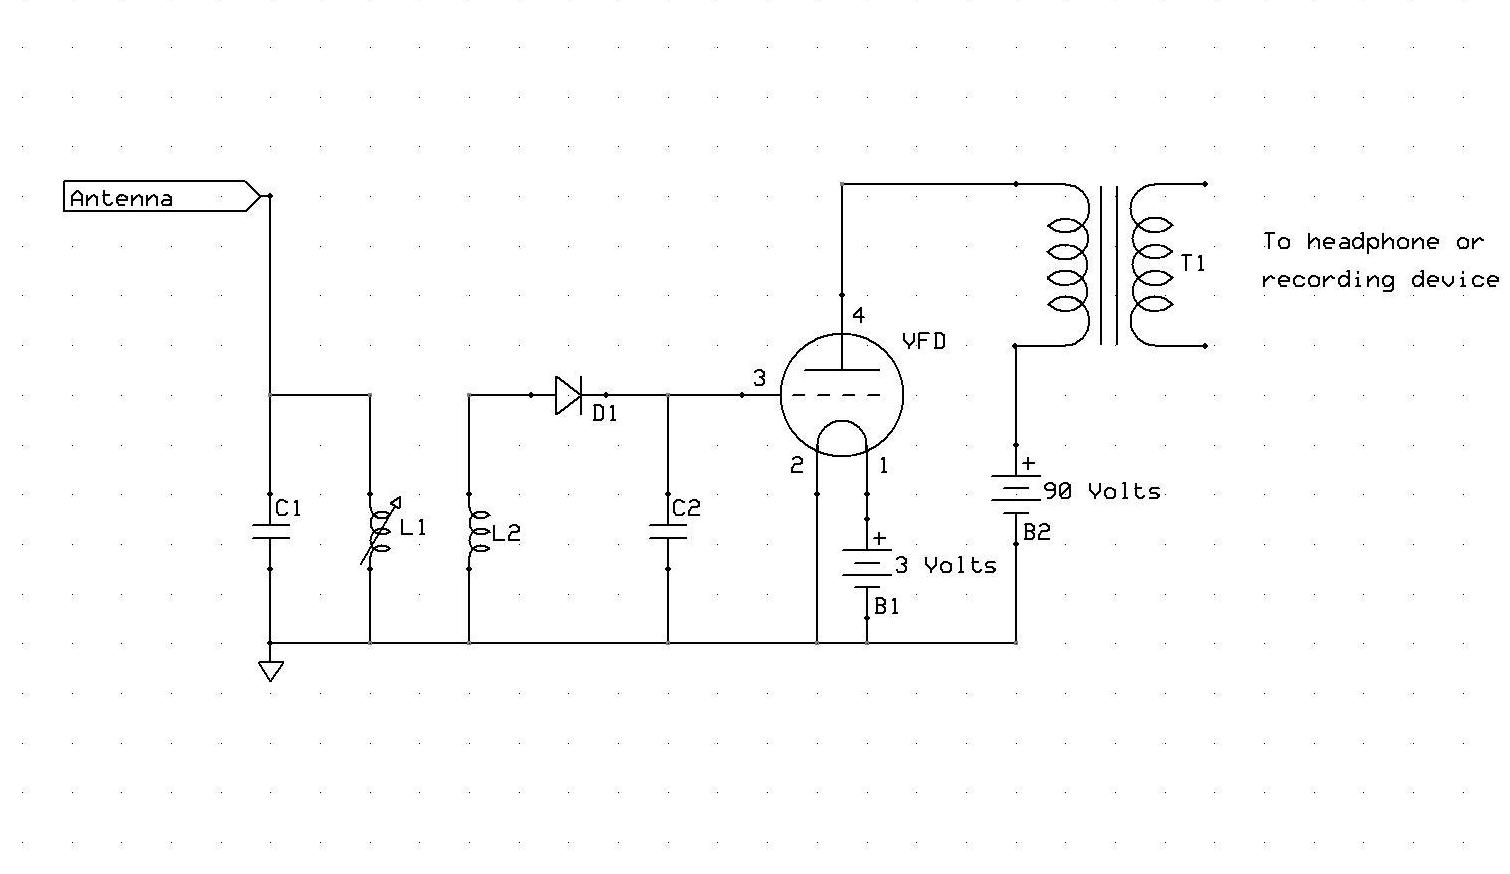 Magnificent amplifier circuit symbol gallery electrical circuit nice antenna schematic symbol ideas electrical circuit diagram ccuart Choice Image